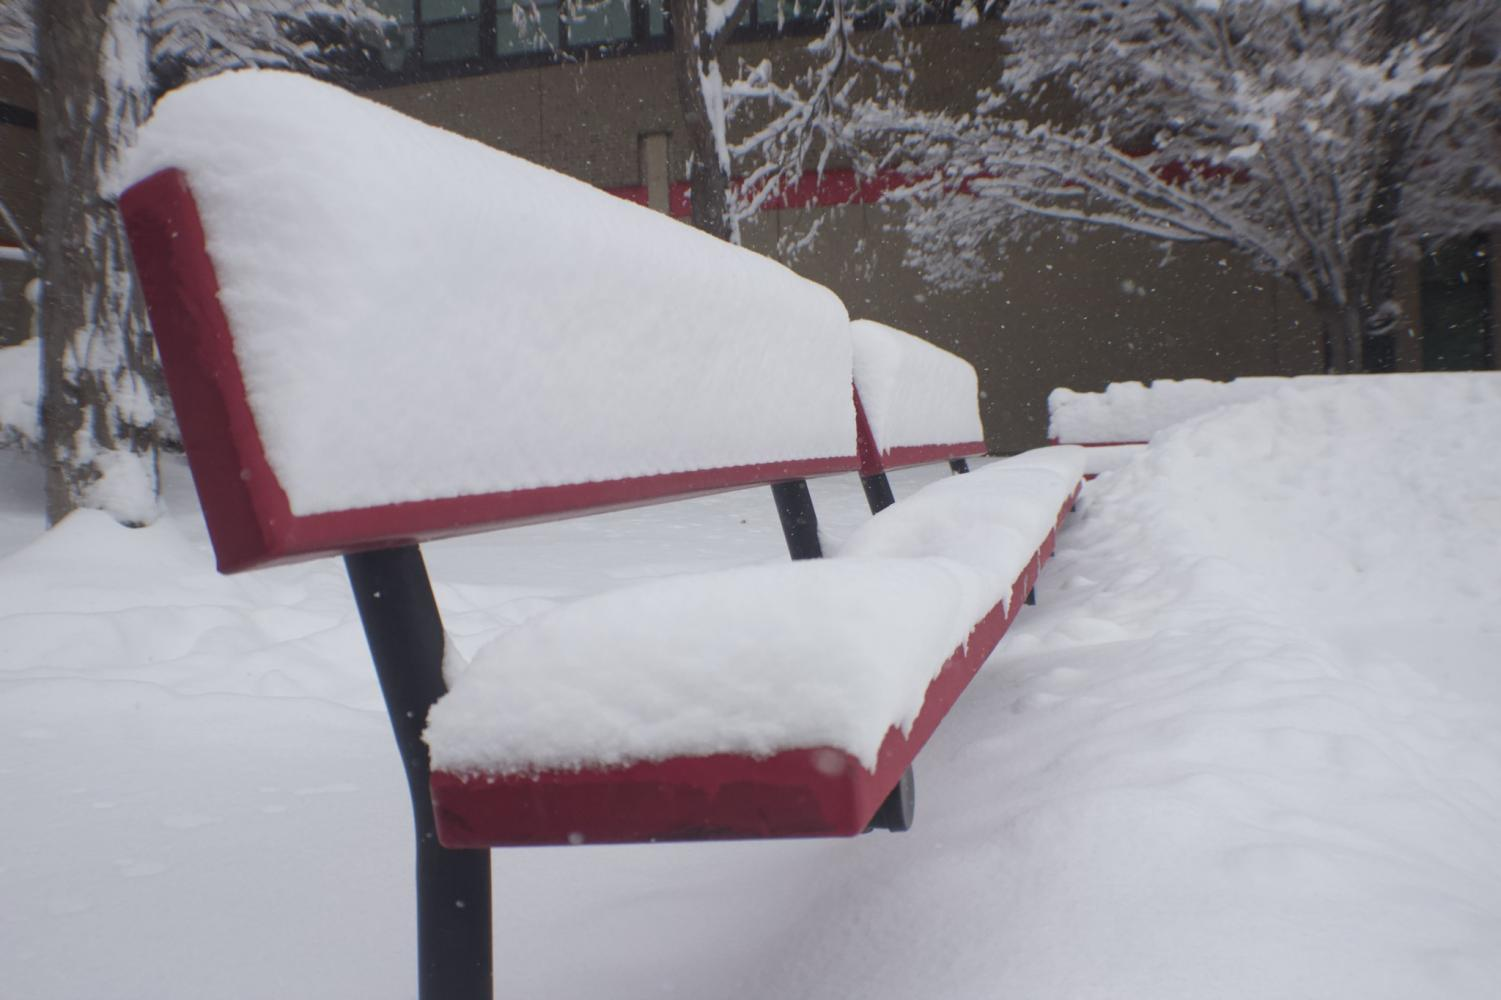 Snow on the front benches